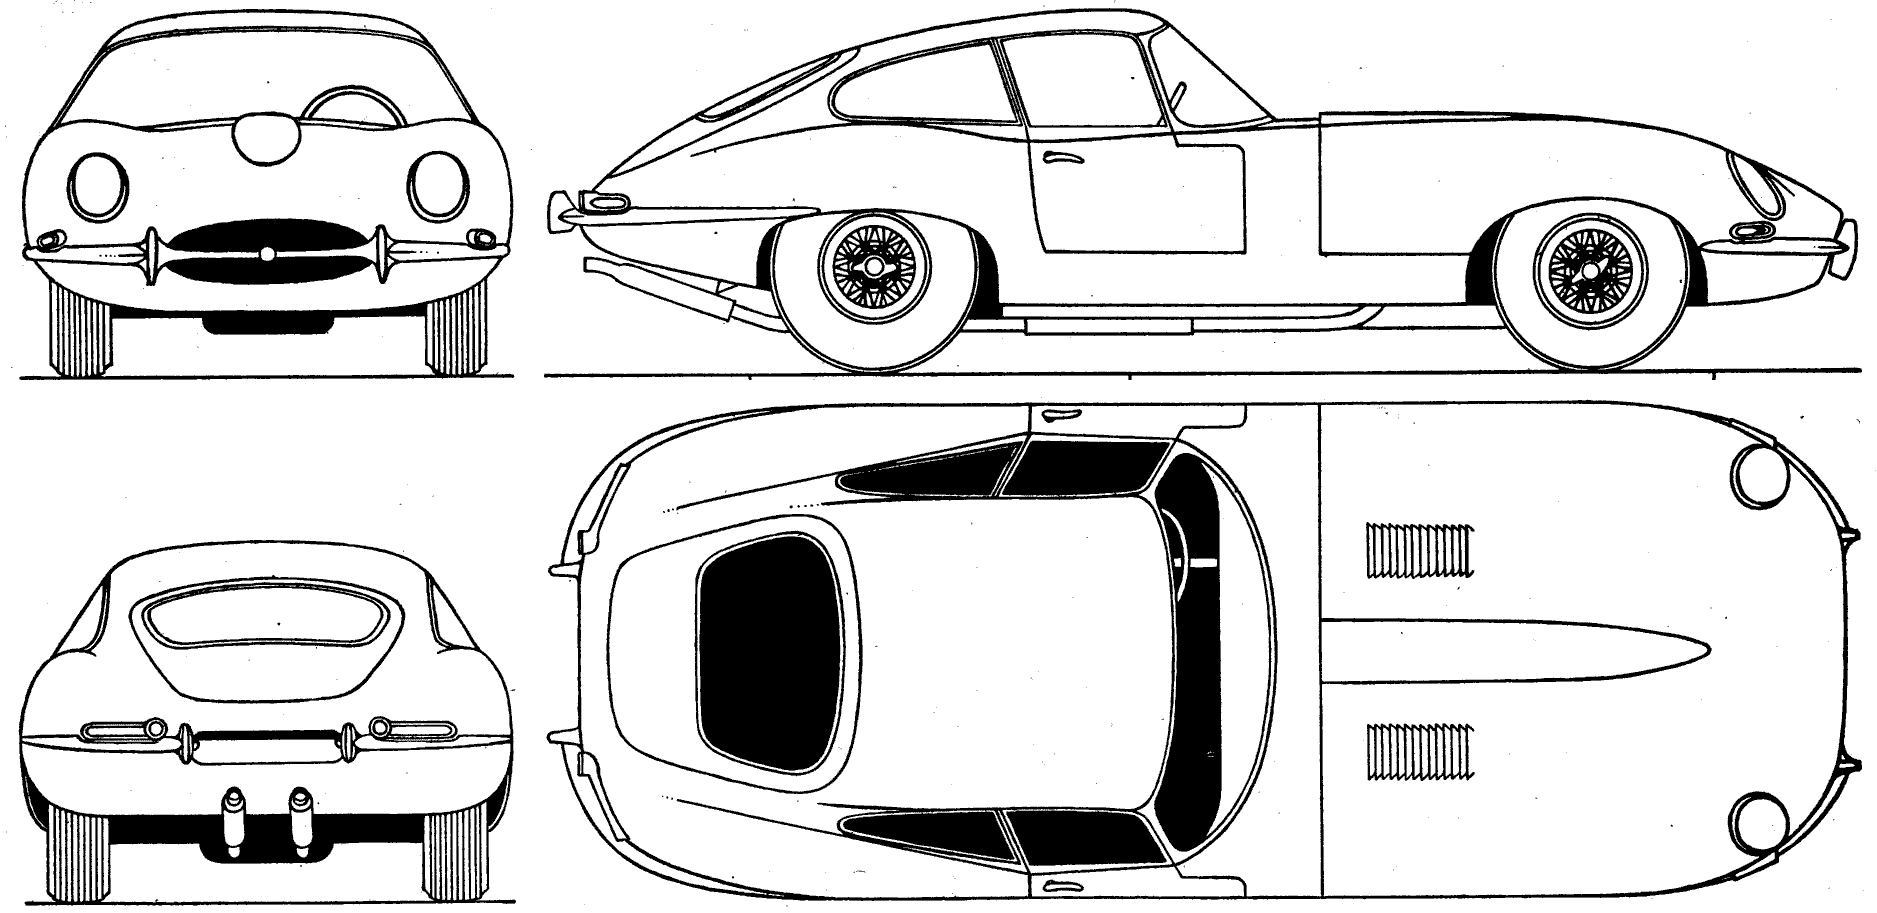 Jaguar e type clipart clip black and white 1961 Jaguar E-Type Coupe blueprints free - Outlines clip black and white